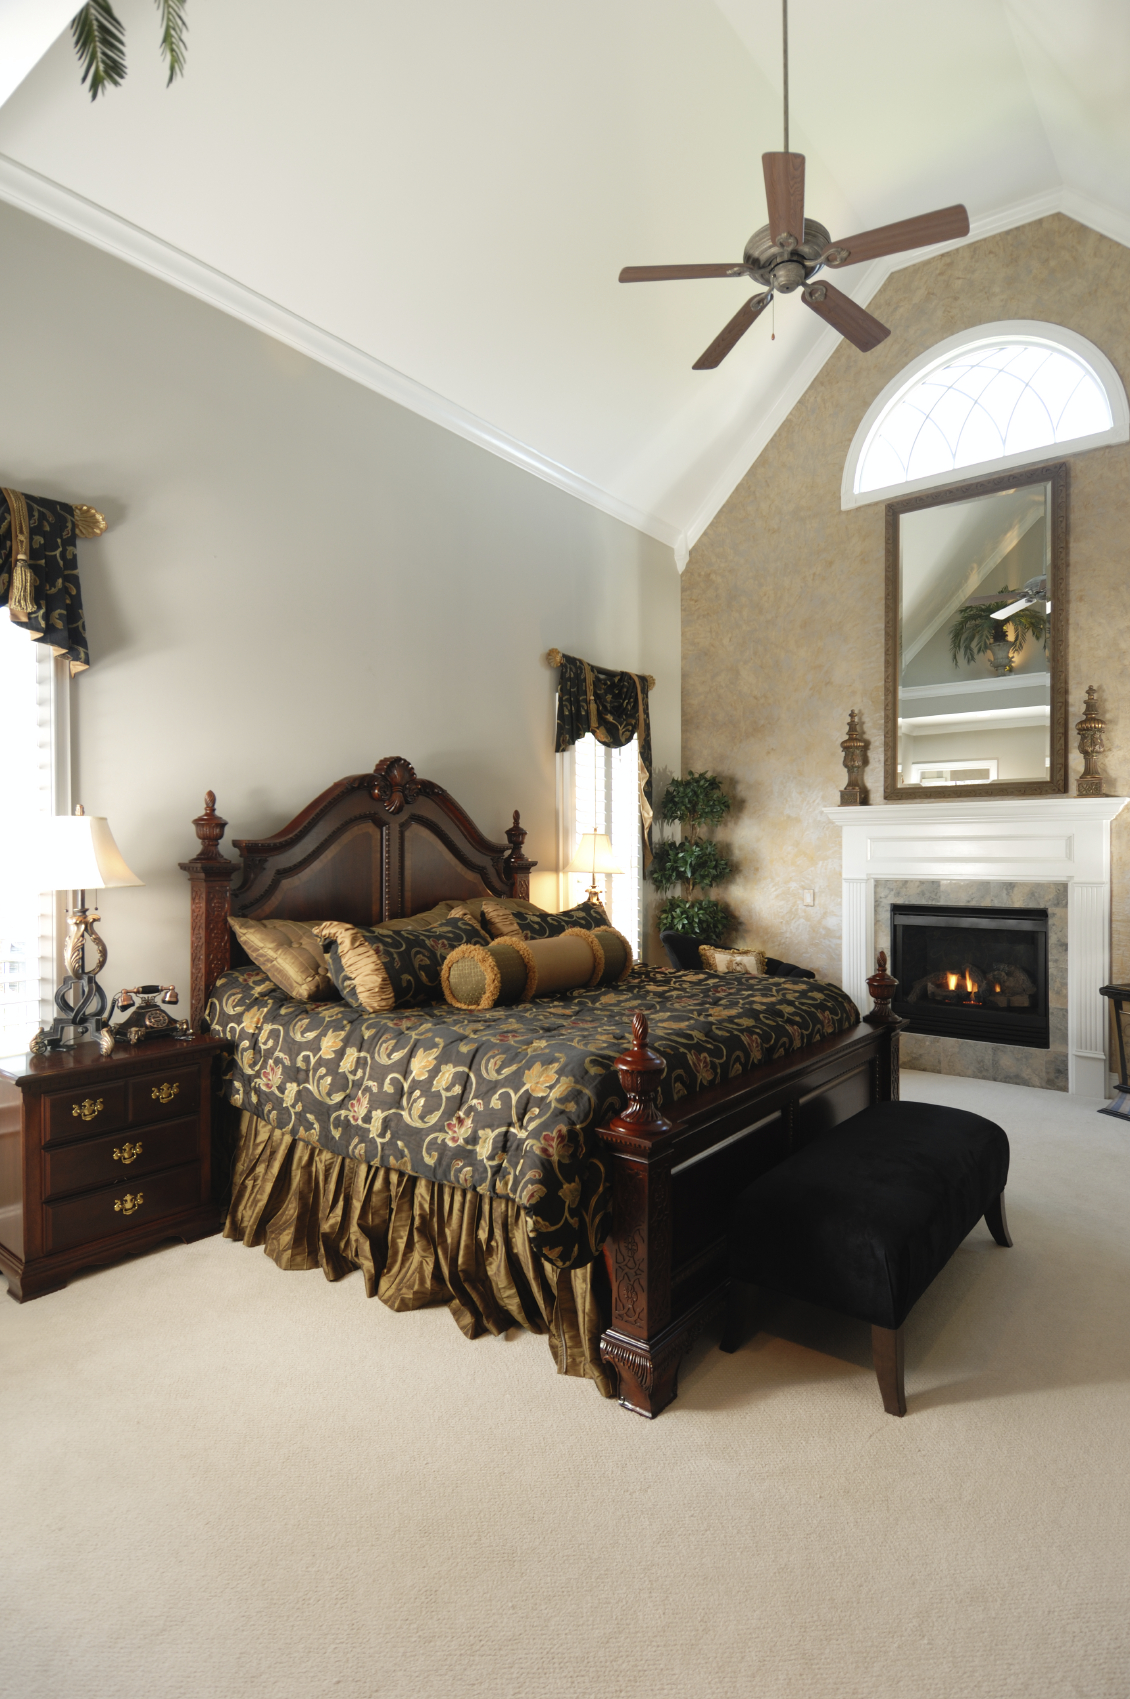 Bedroom stone fireplace - The Soaring Cathedral Ceilings Keep The Dark Furniture And Dark Bedding From Making The Room Feel